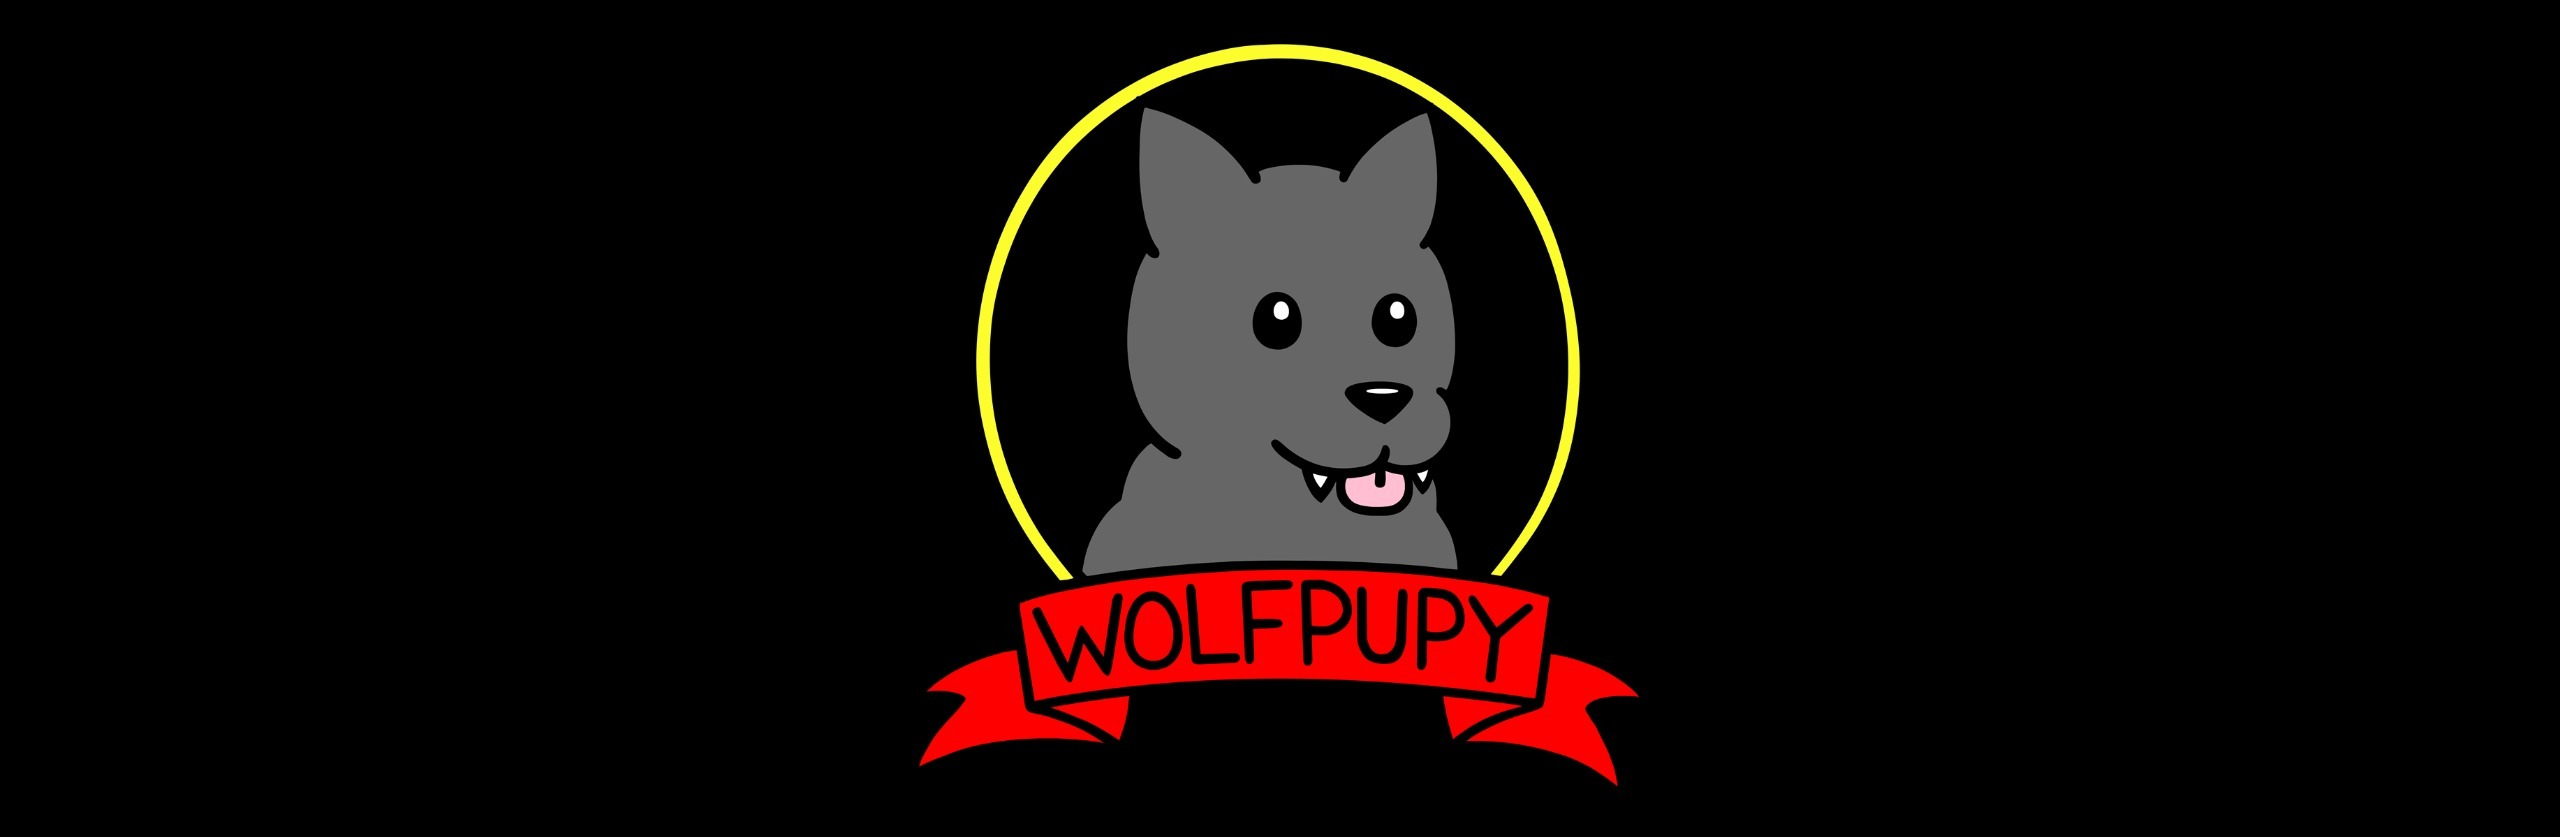 wolfpupy (@wolfpupy) Cover Image